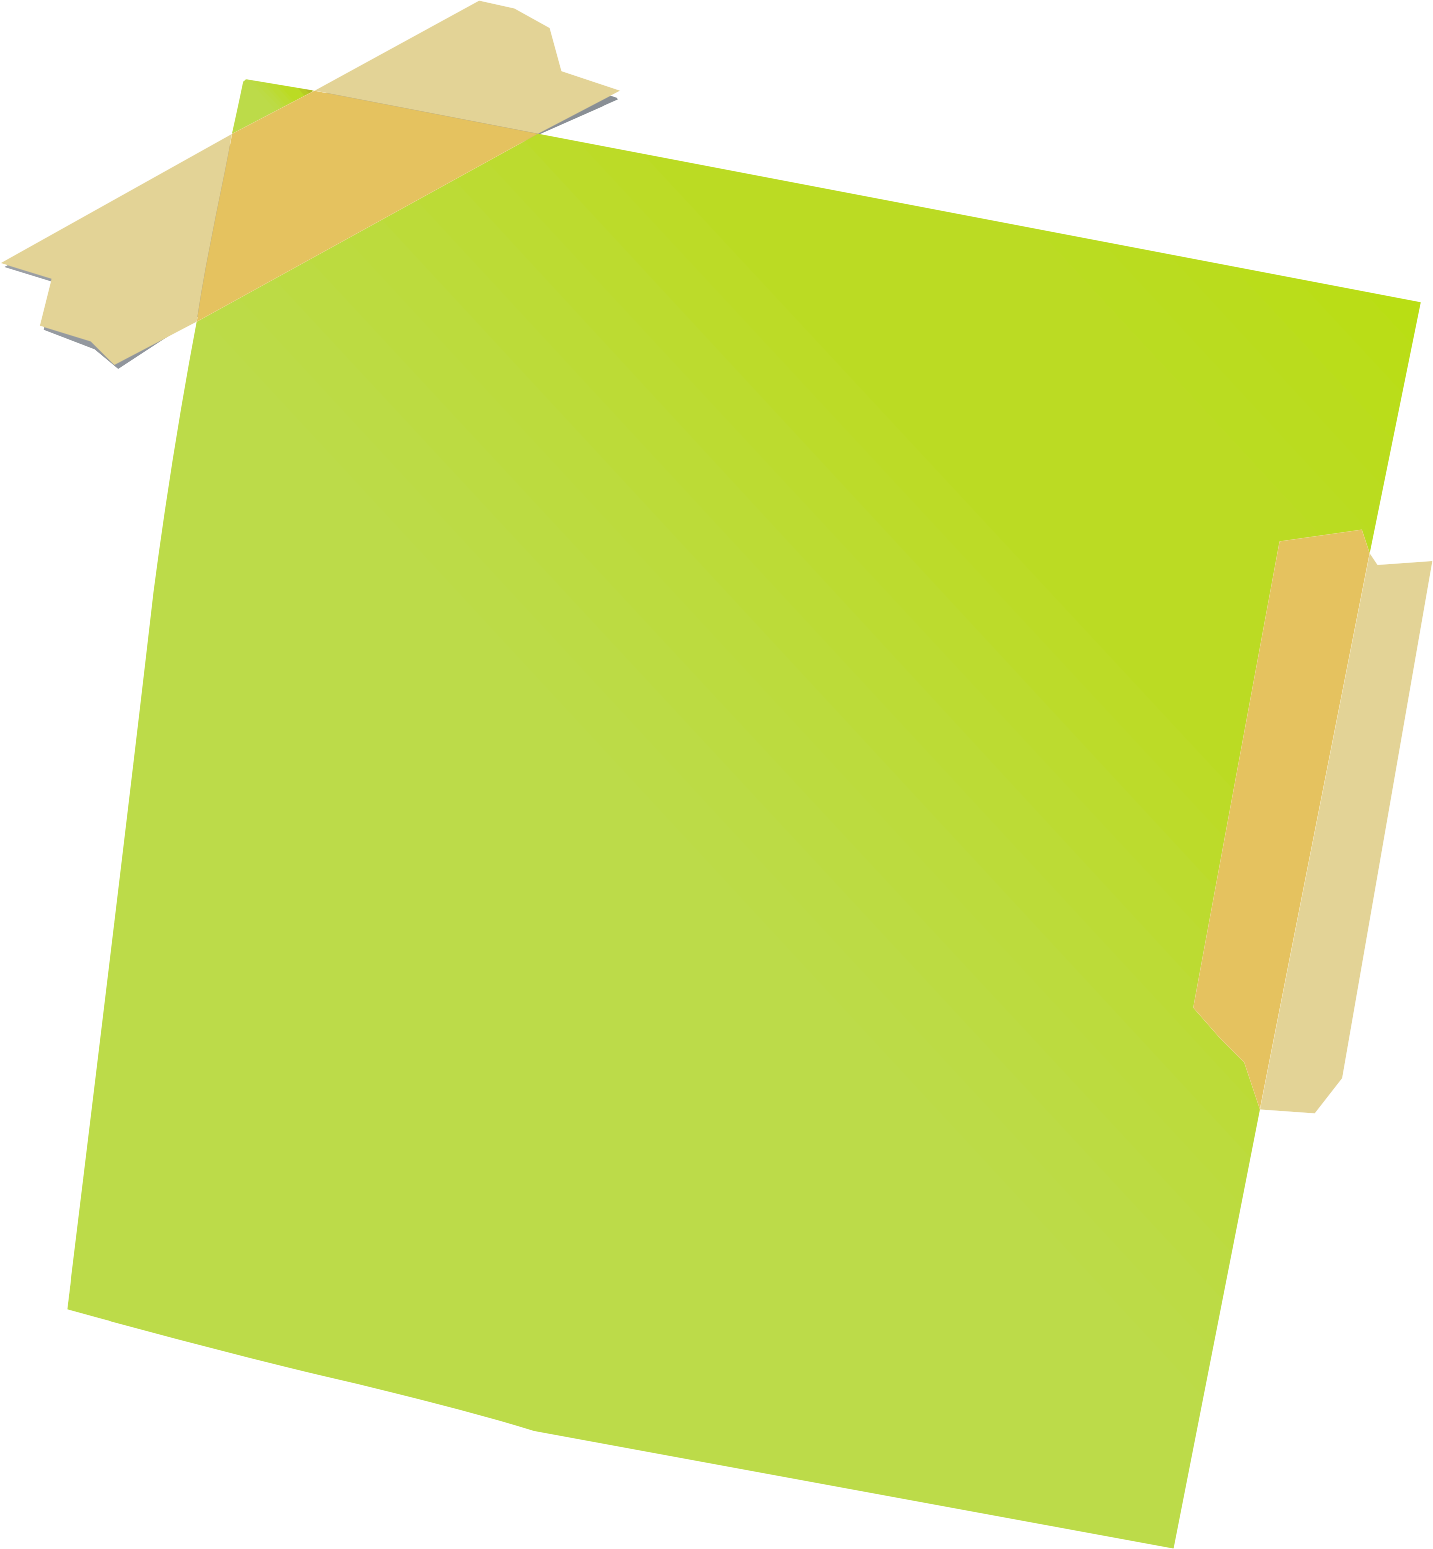 green sticky notes png image purepng free transparent cc0 png